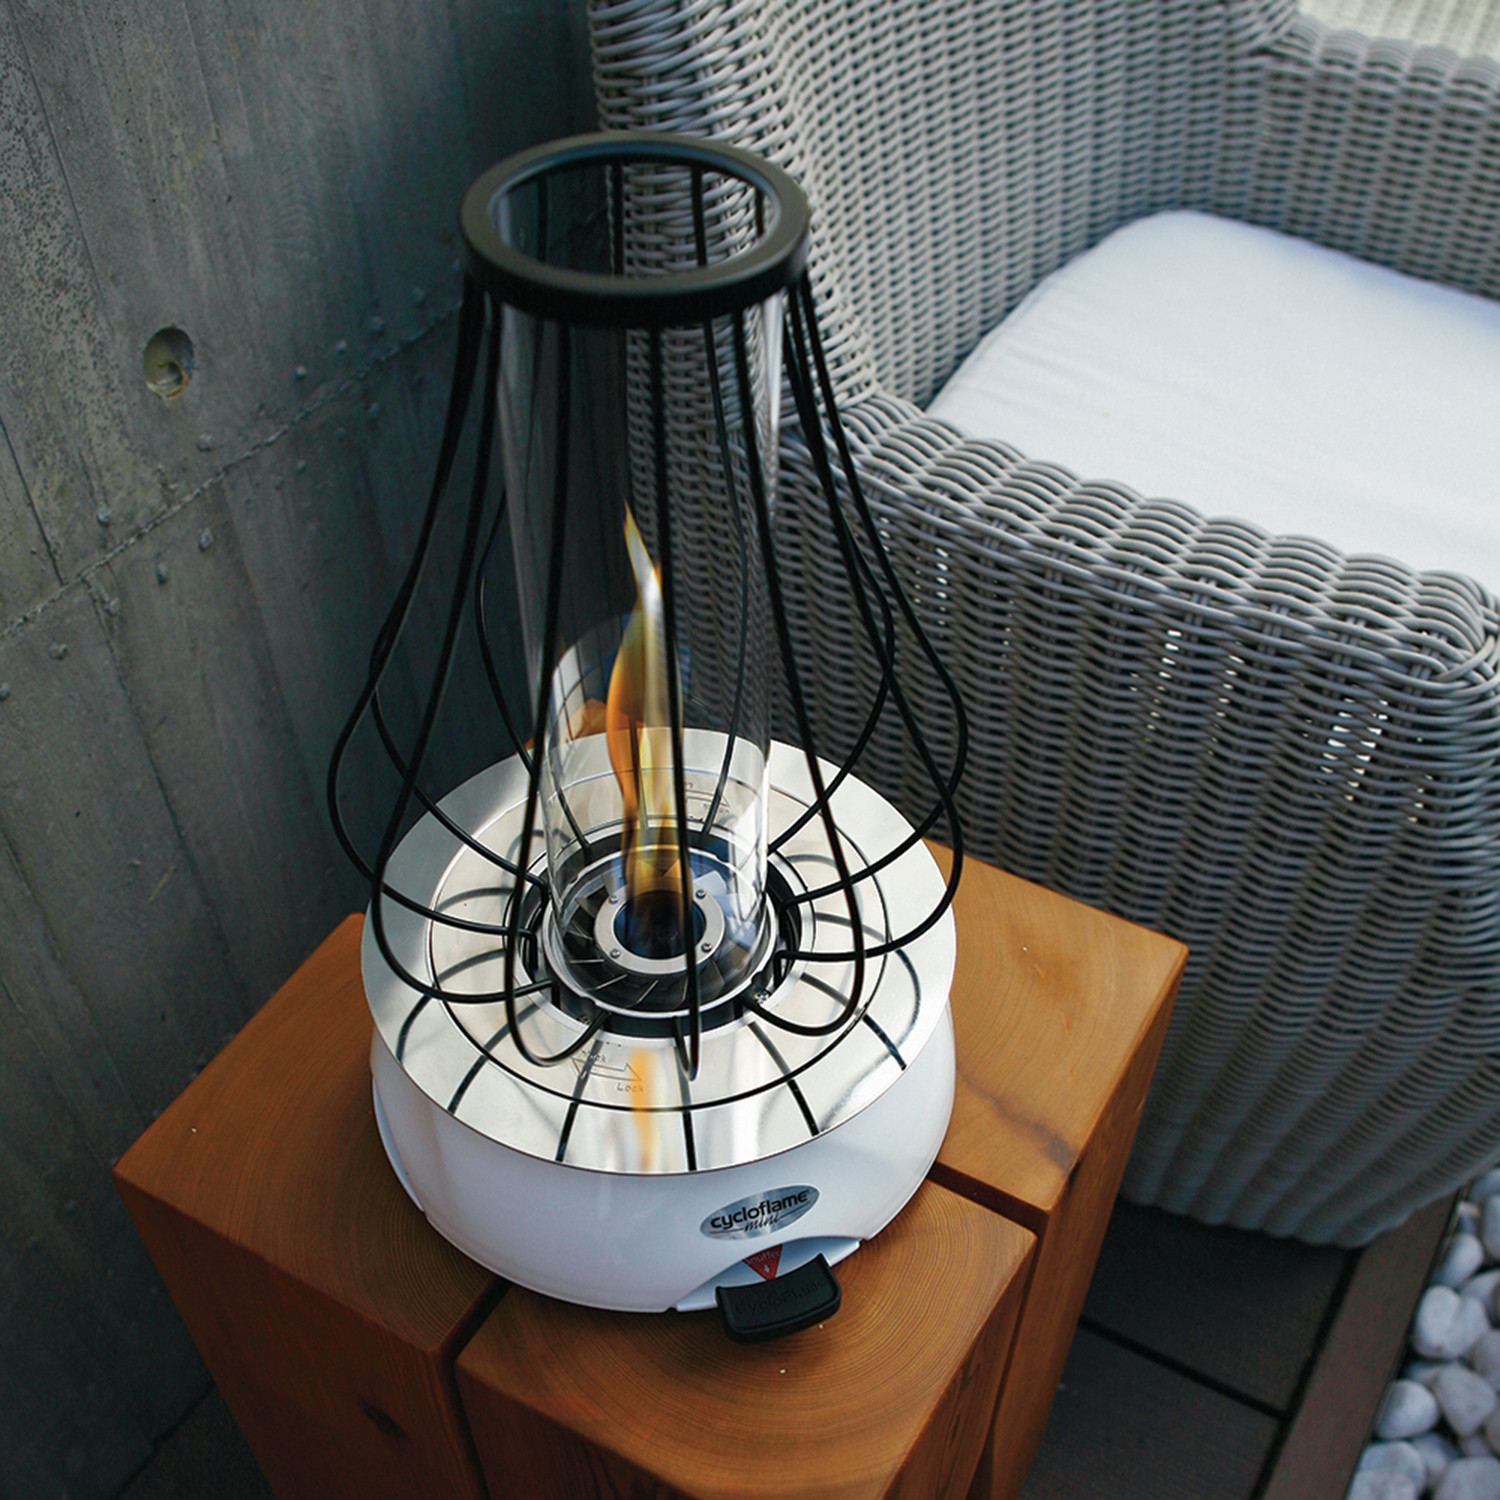 biofuel tabletop fire pit  blanca  cycloflame  touch of modern - biofuel tabletop fire pit  blanca